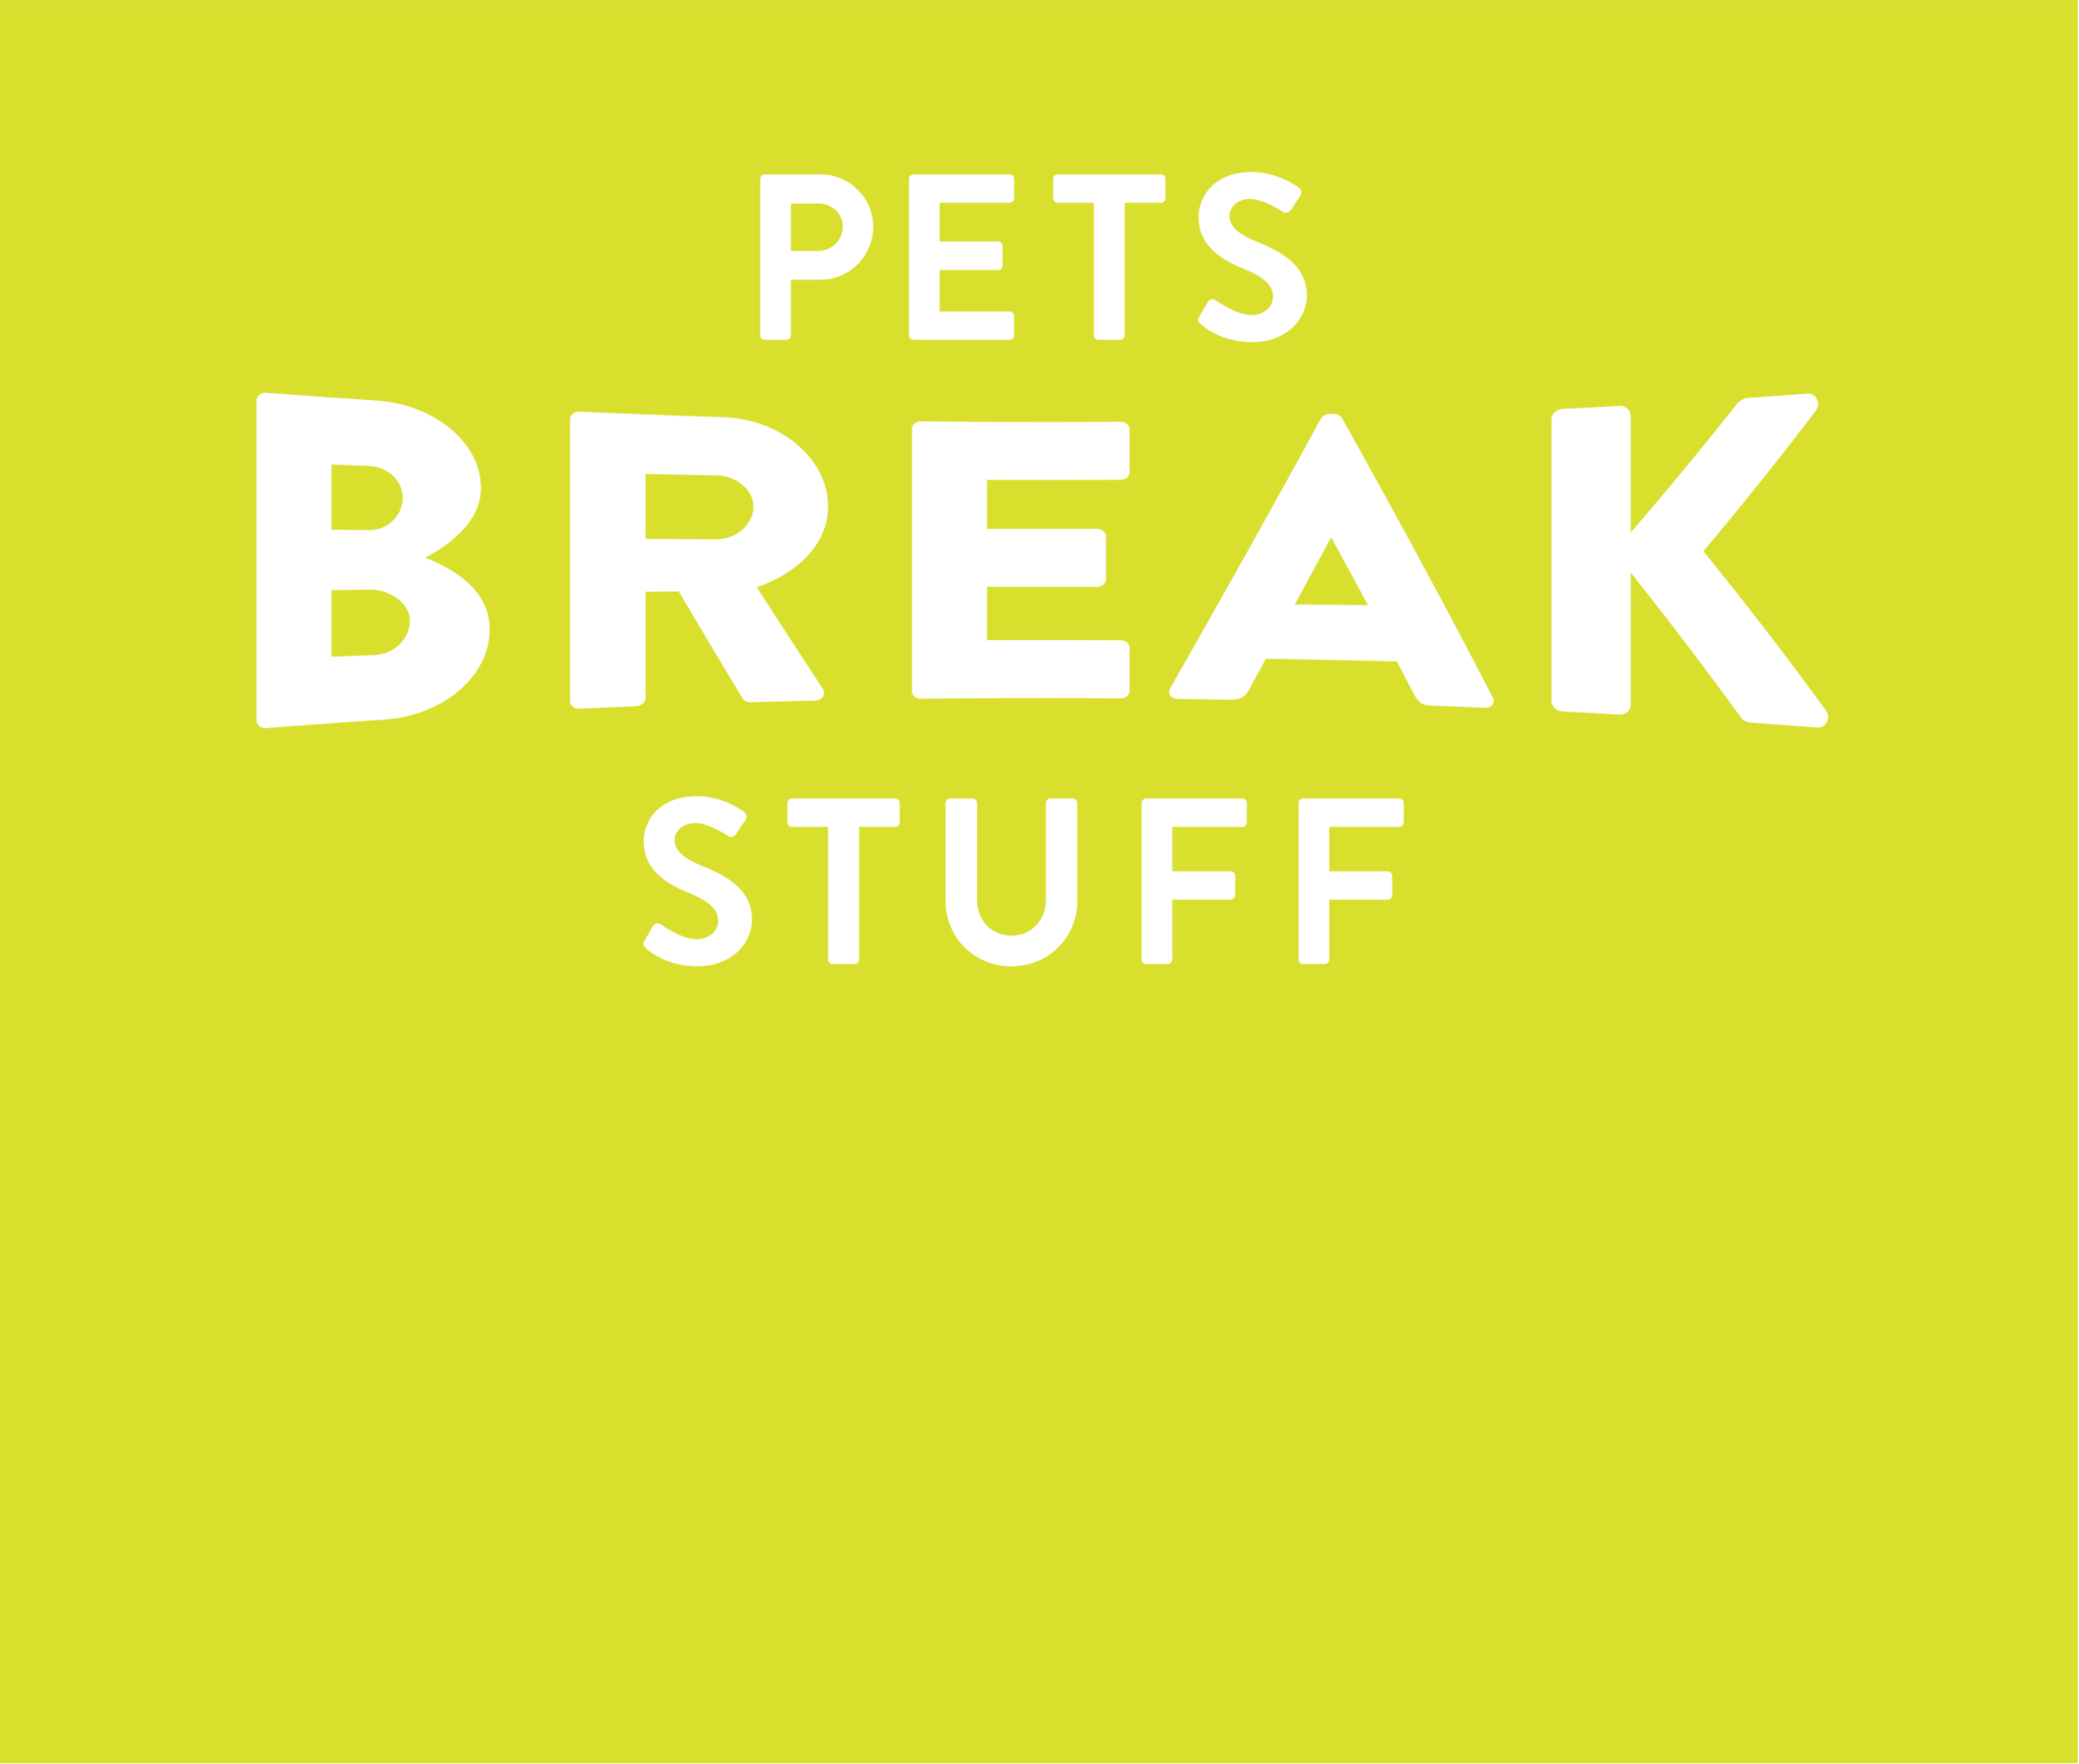 Pets break stuff